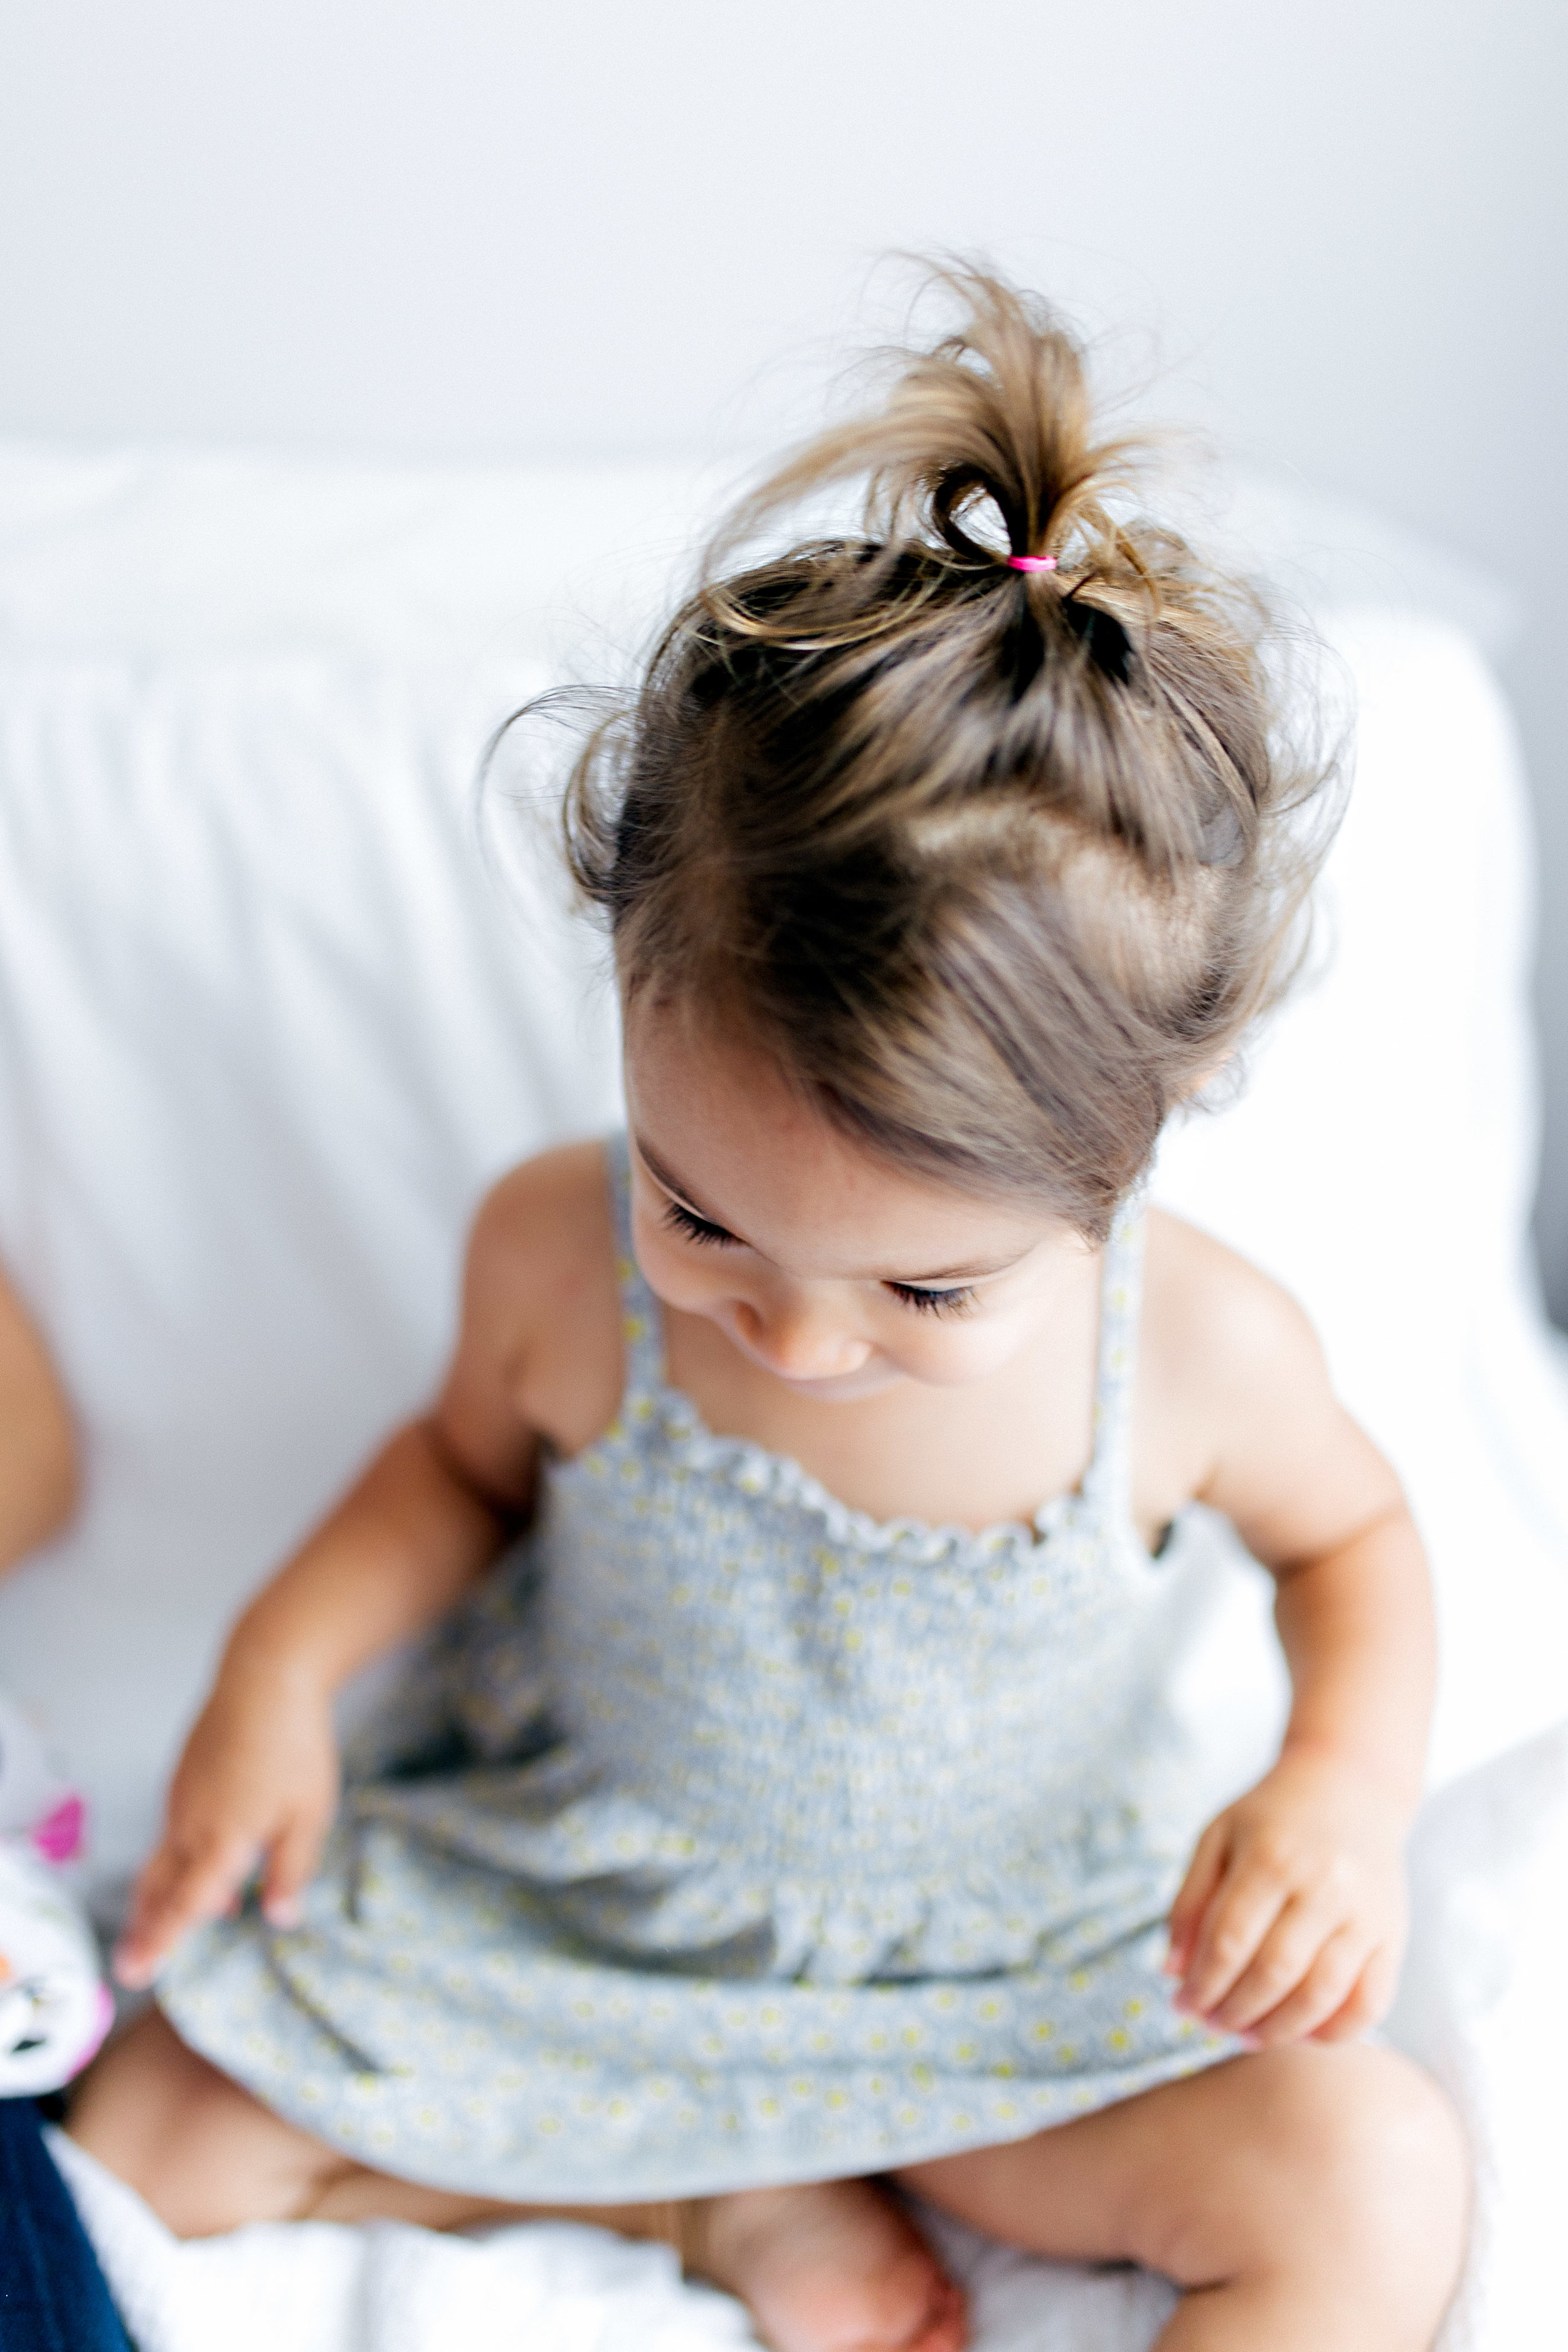 Newborn Family Session, Natural Light in Home, toddler in house lifestyle | Chelsea Macor Photography Seattle WA-28.jpg